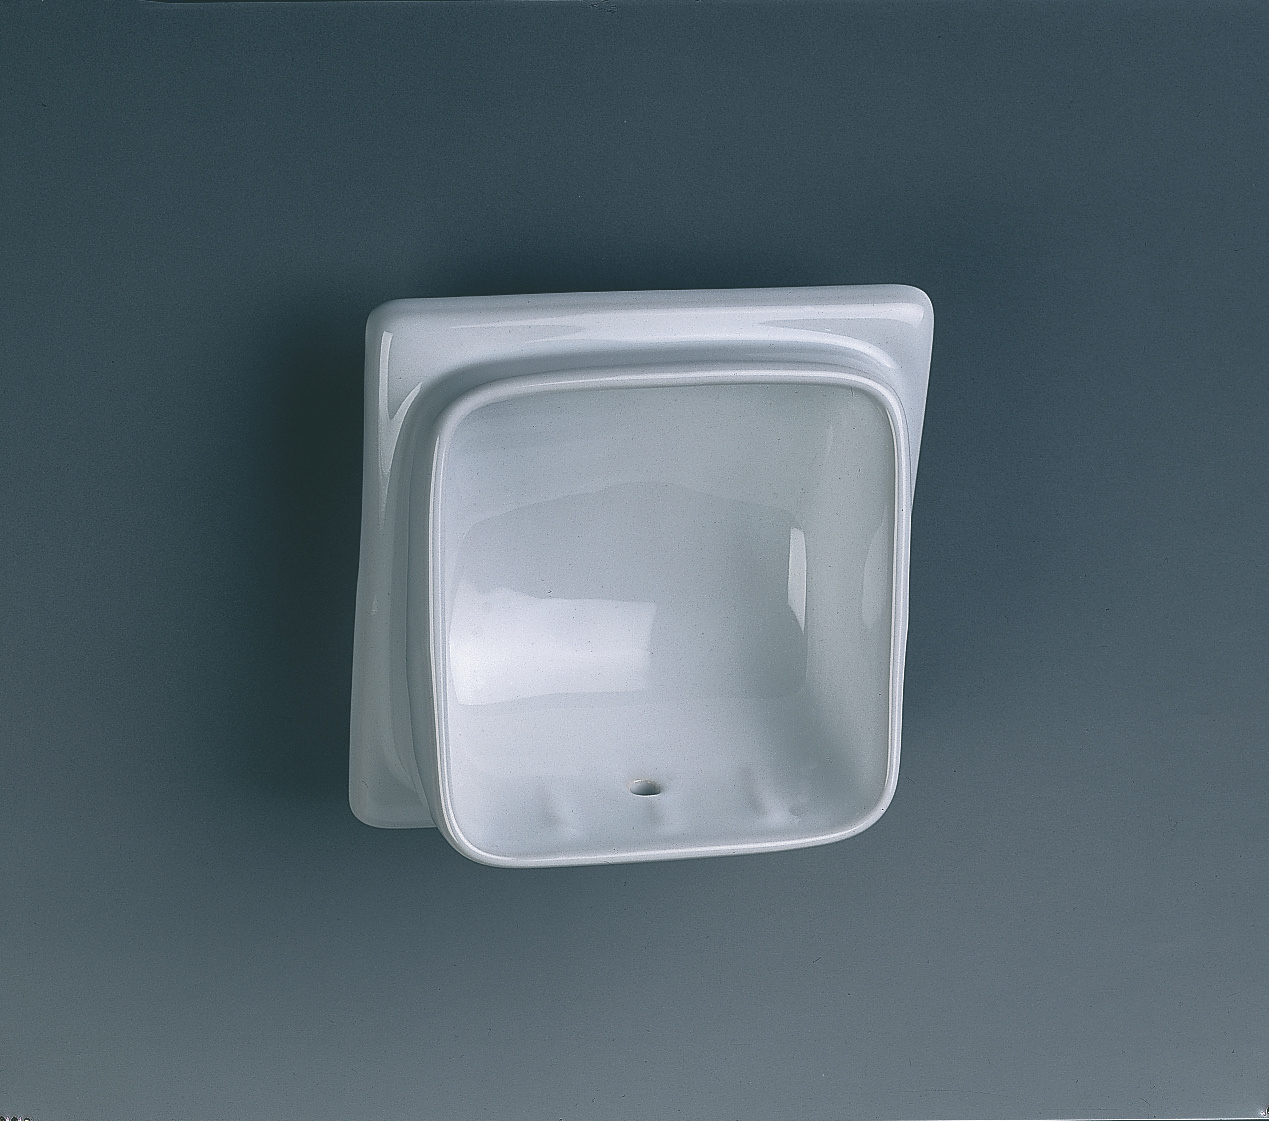 Twyford Built In Semi Recessed Soap Dish Vc9808wh